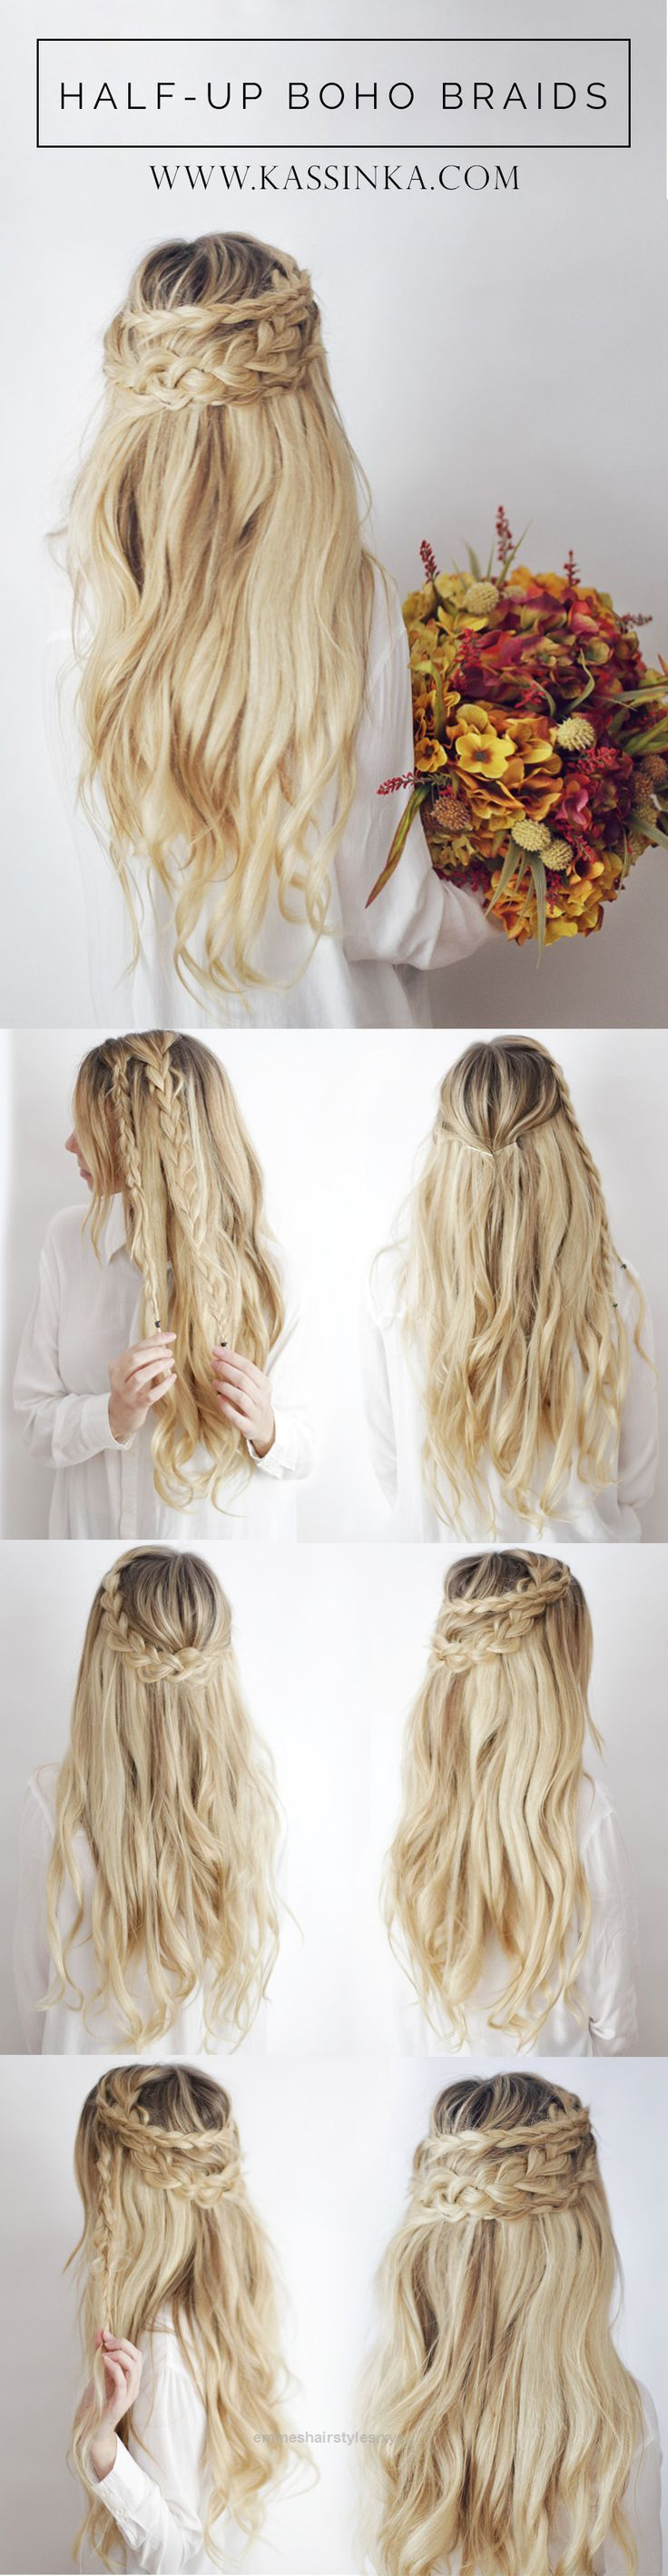 Terrific Hair Tutorial with Luxy Hair on Kassinka…  The post  Hair Tutorial with Luxy Hair on Kassinka……  appeared first on  Emme's Hairstyles .